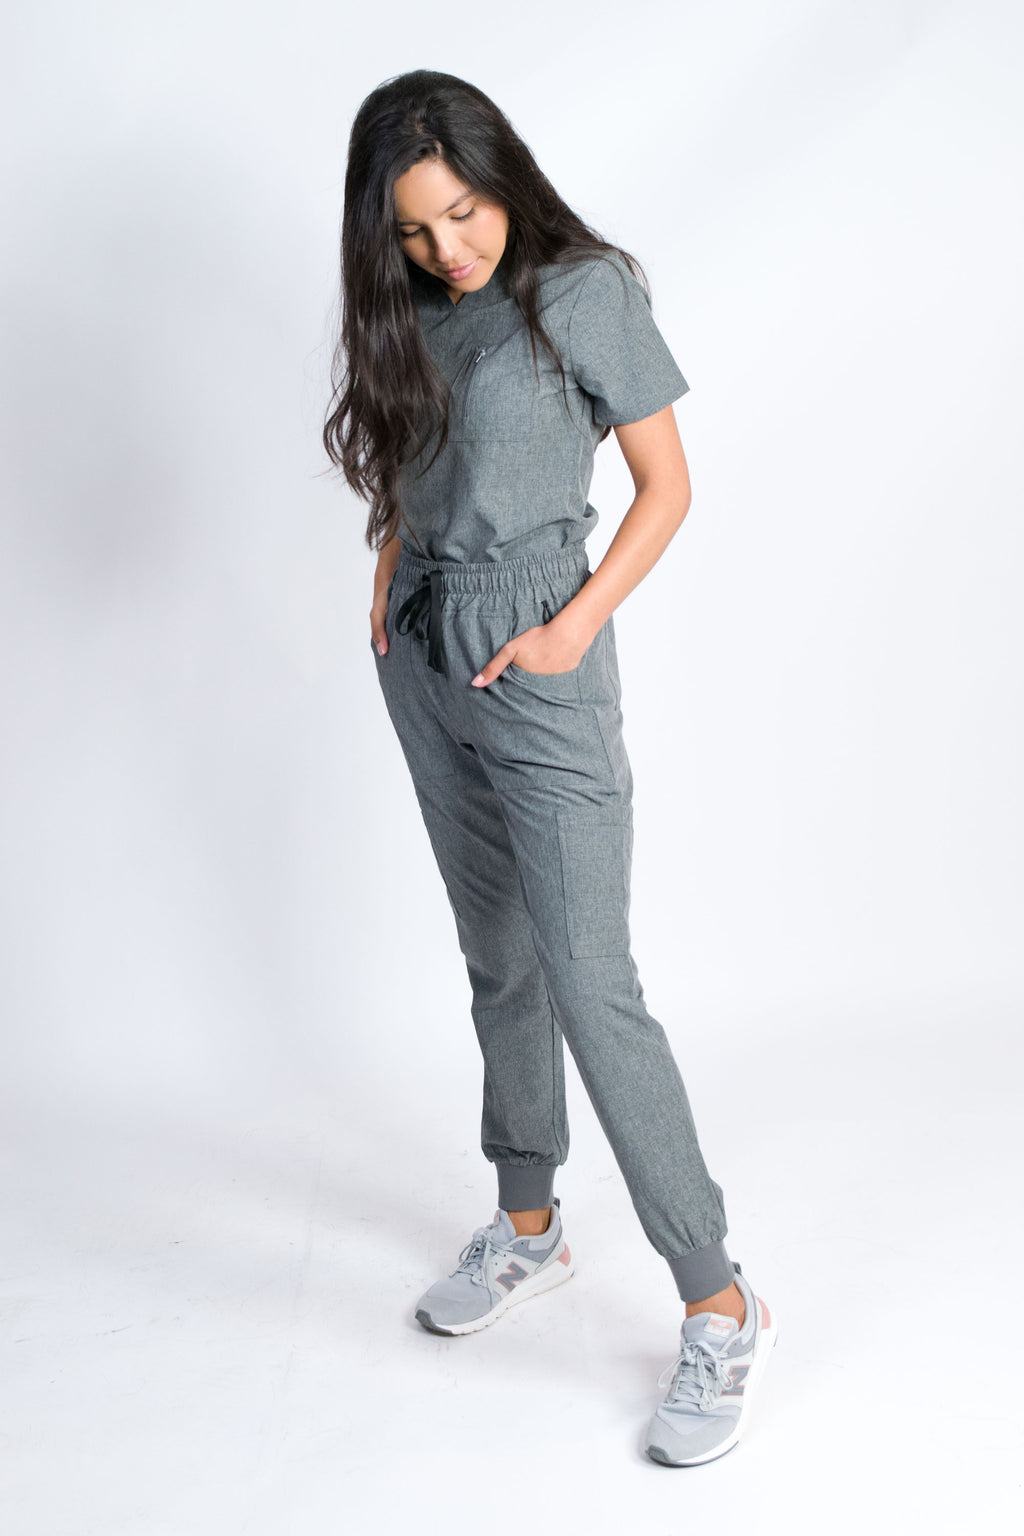 Fleur | Women's Mitered Neck Zip Chest Pocket Top Knit Rib Cuffs Jogger Pants Set | Heather Graphite